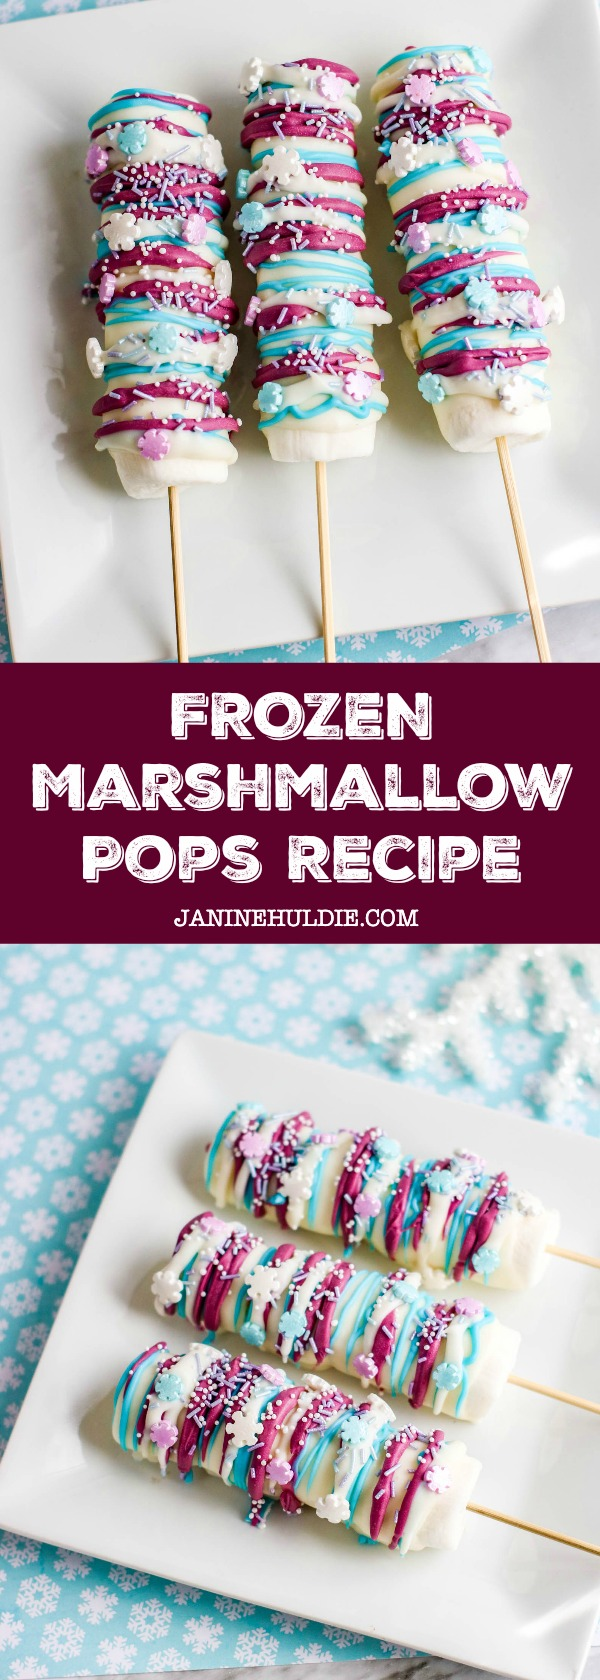 Frozen Marshmallow Pops Recipe